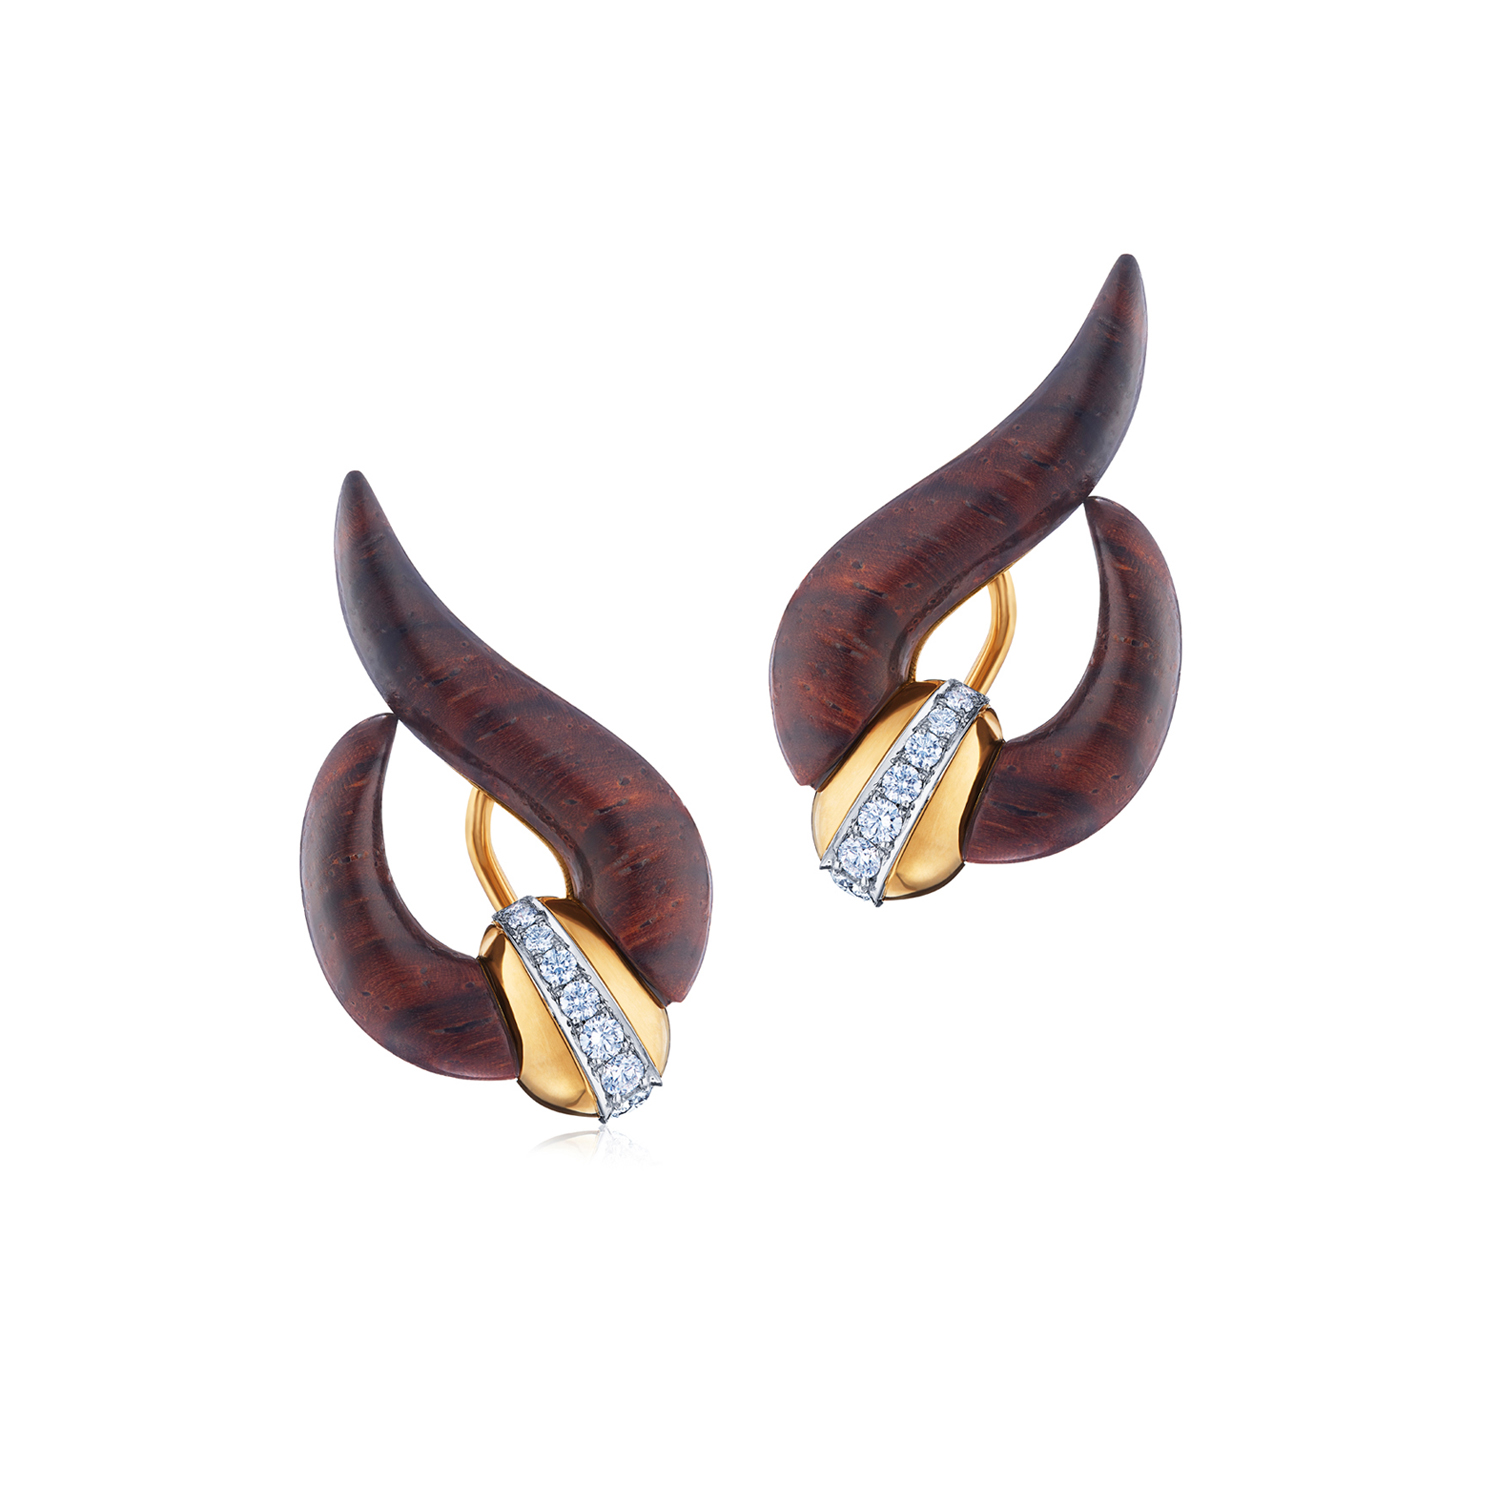 18K Yellow Gold Cocobolo Wood and Diamond Wave Earrings Signed Fred Leighton, Style E-40420-FL-0-0